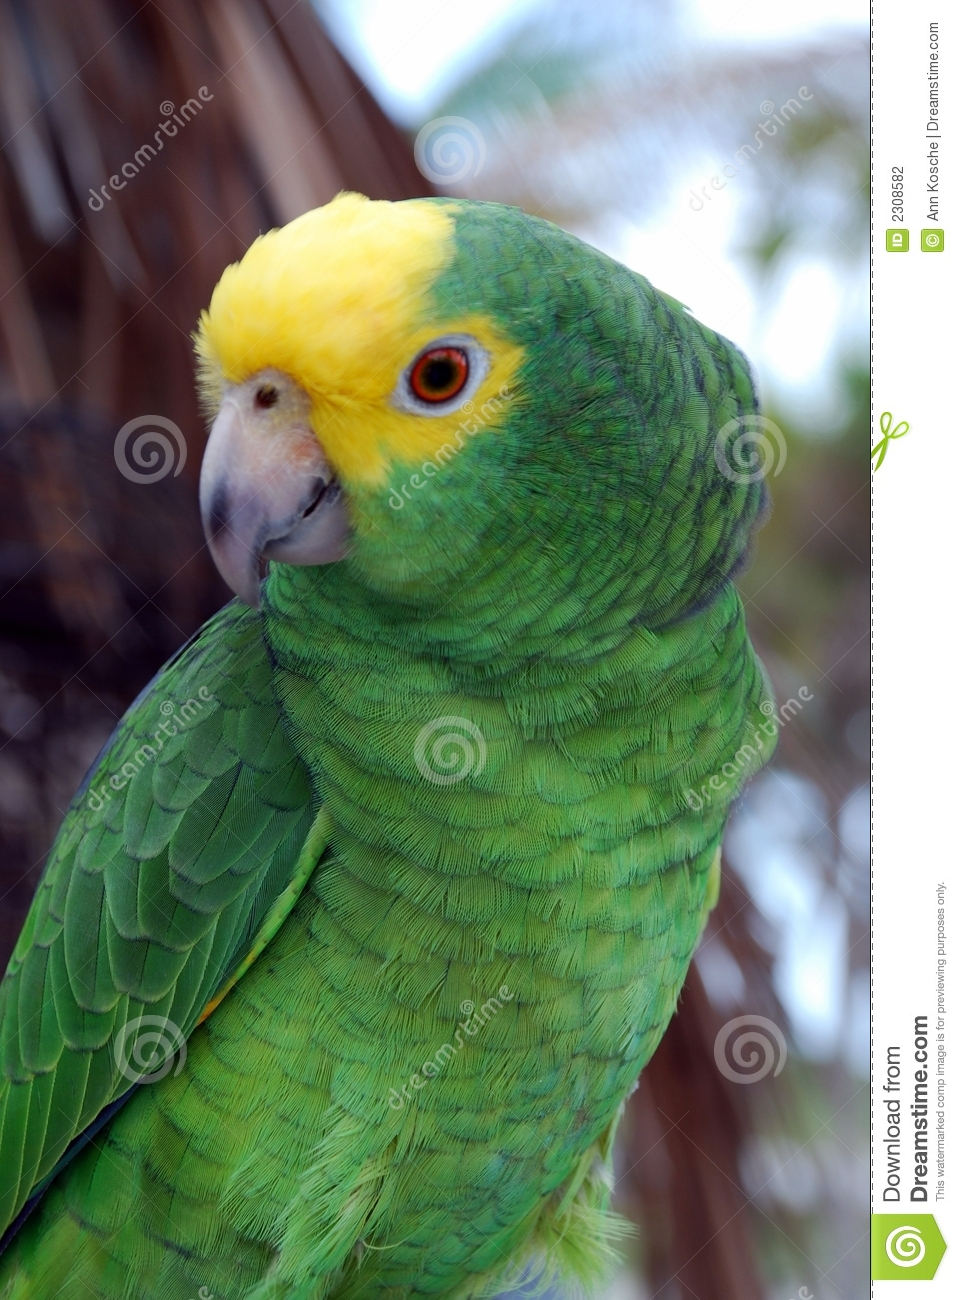 yellow and green parrots